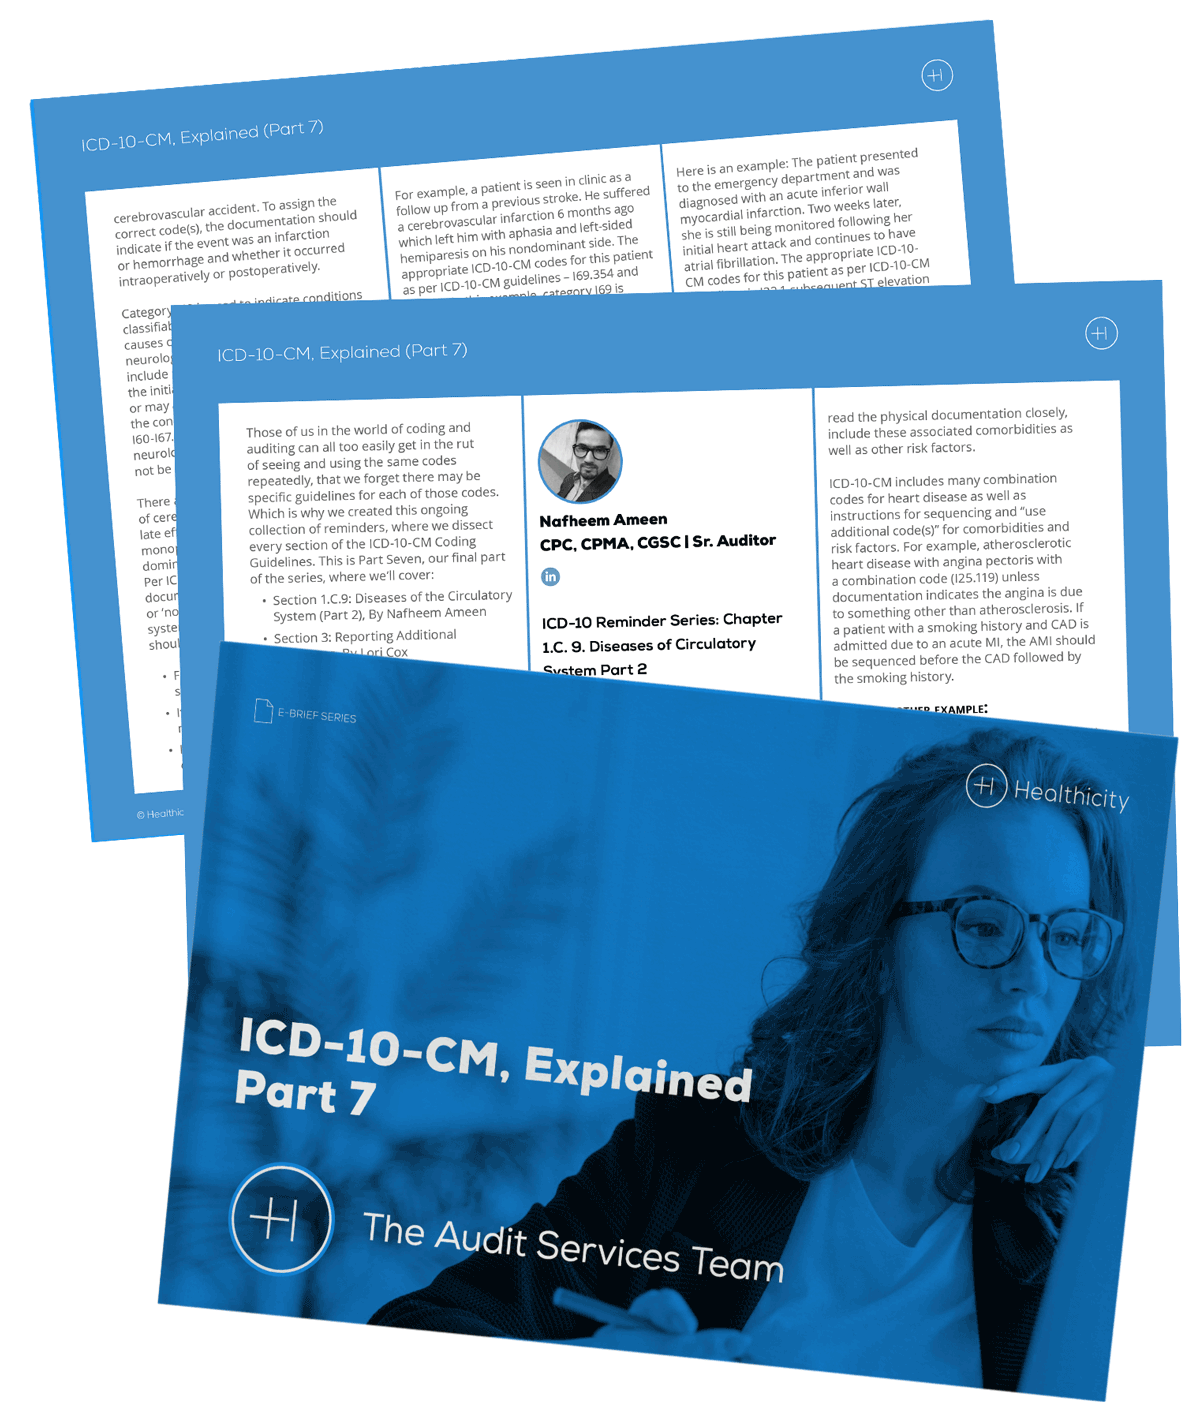 Download the eBrief - ICD-10-CM, Explained (Part 7)